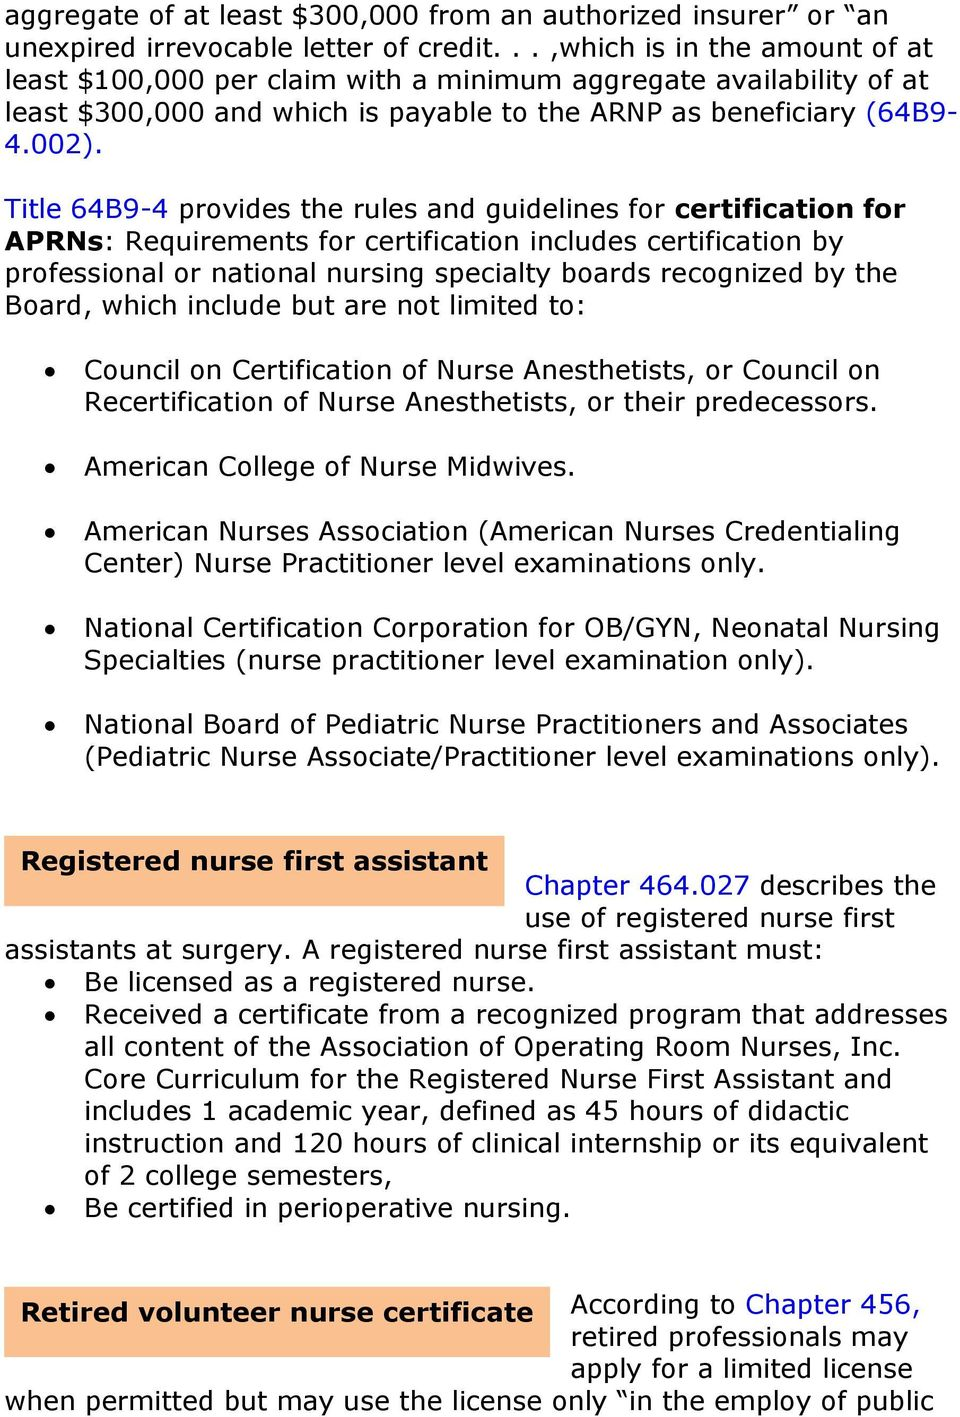 Title 64B9-4 provides the rules and guidelines for certification for APRNs: Requirements for certification includes certification by professional or national nursing specialty boards recognized by